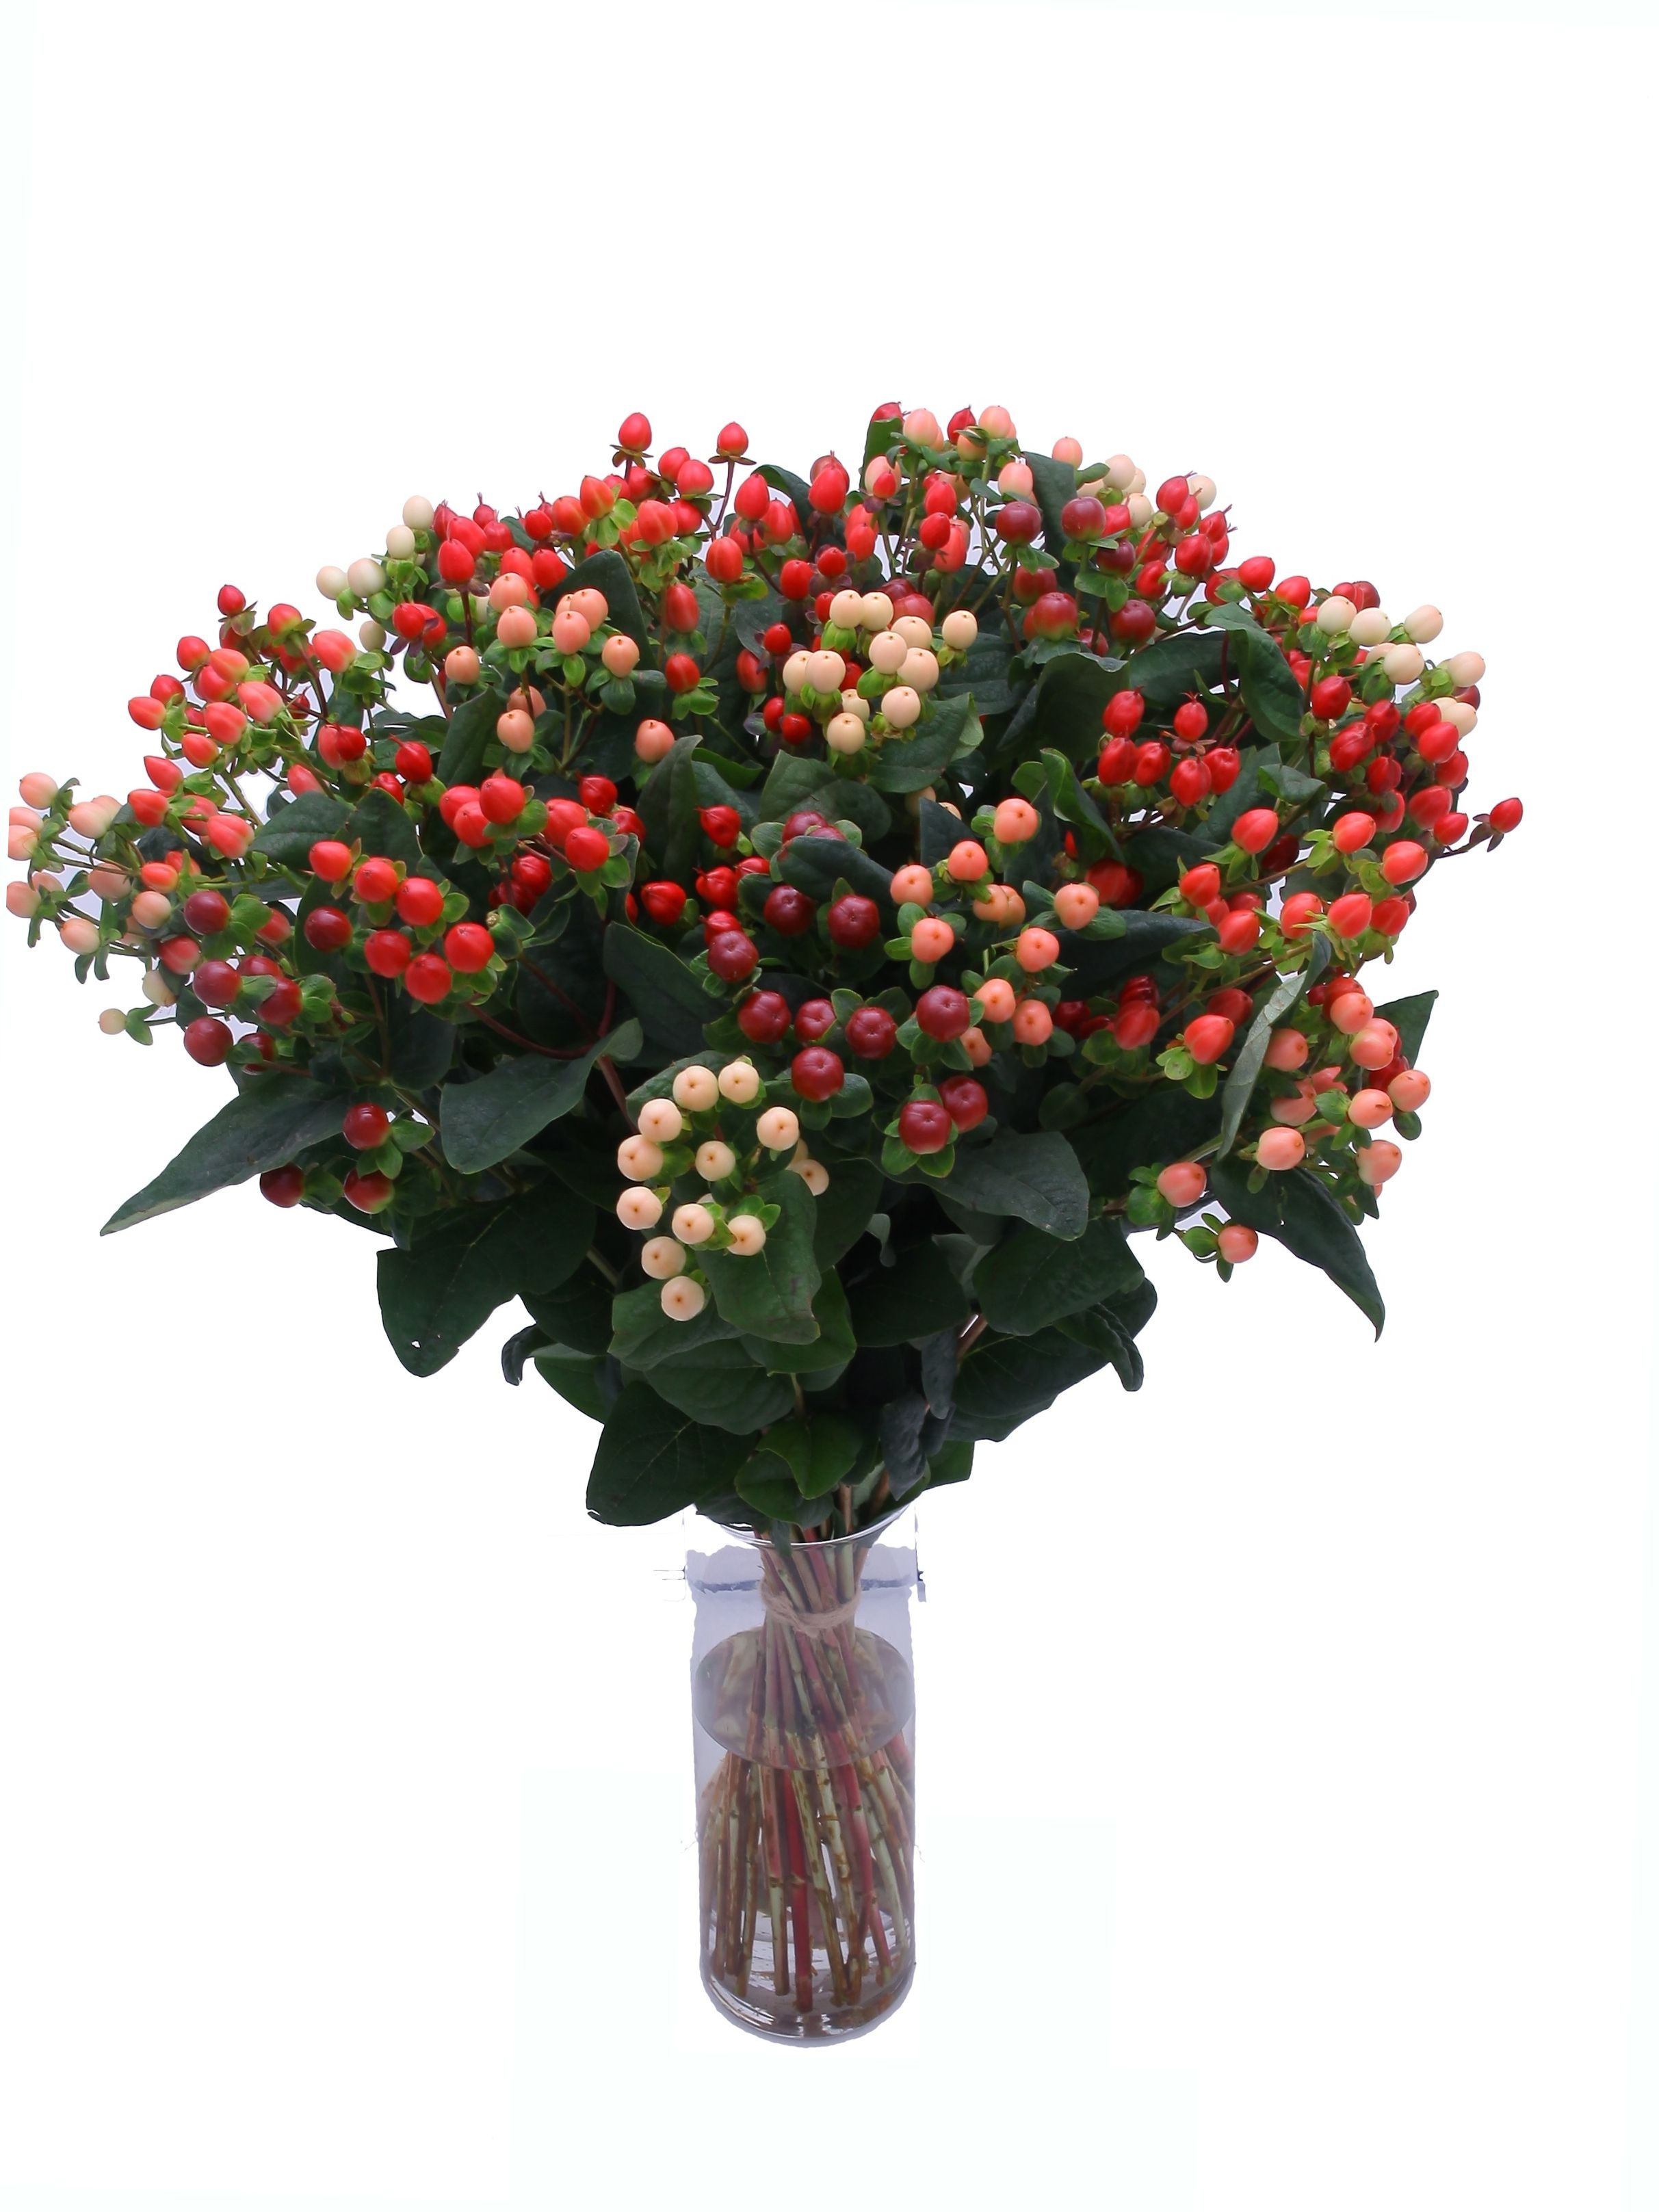 If you want bright berries for Christmas for a traditional look, then hypericum is a fantastic solution. These are Sovereign Hypericum Coco berries, in mixed colours from red and pink to cream and peach.